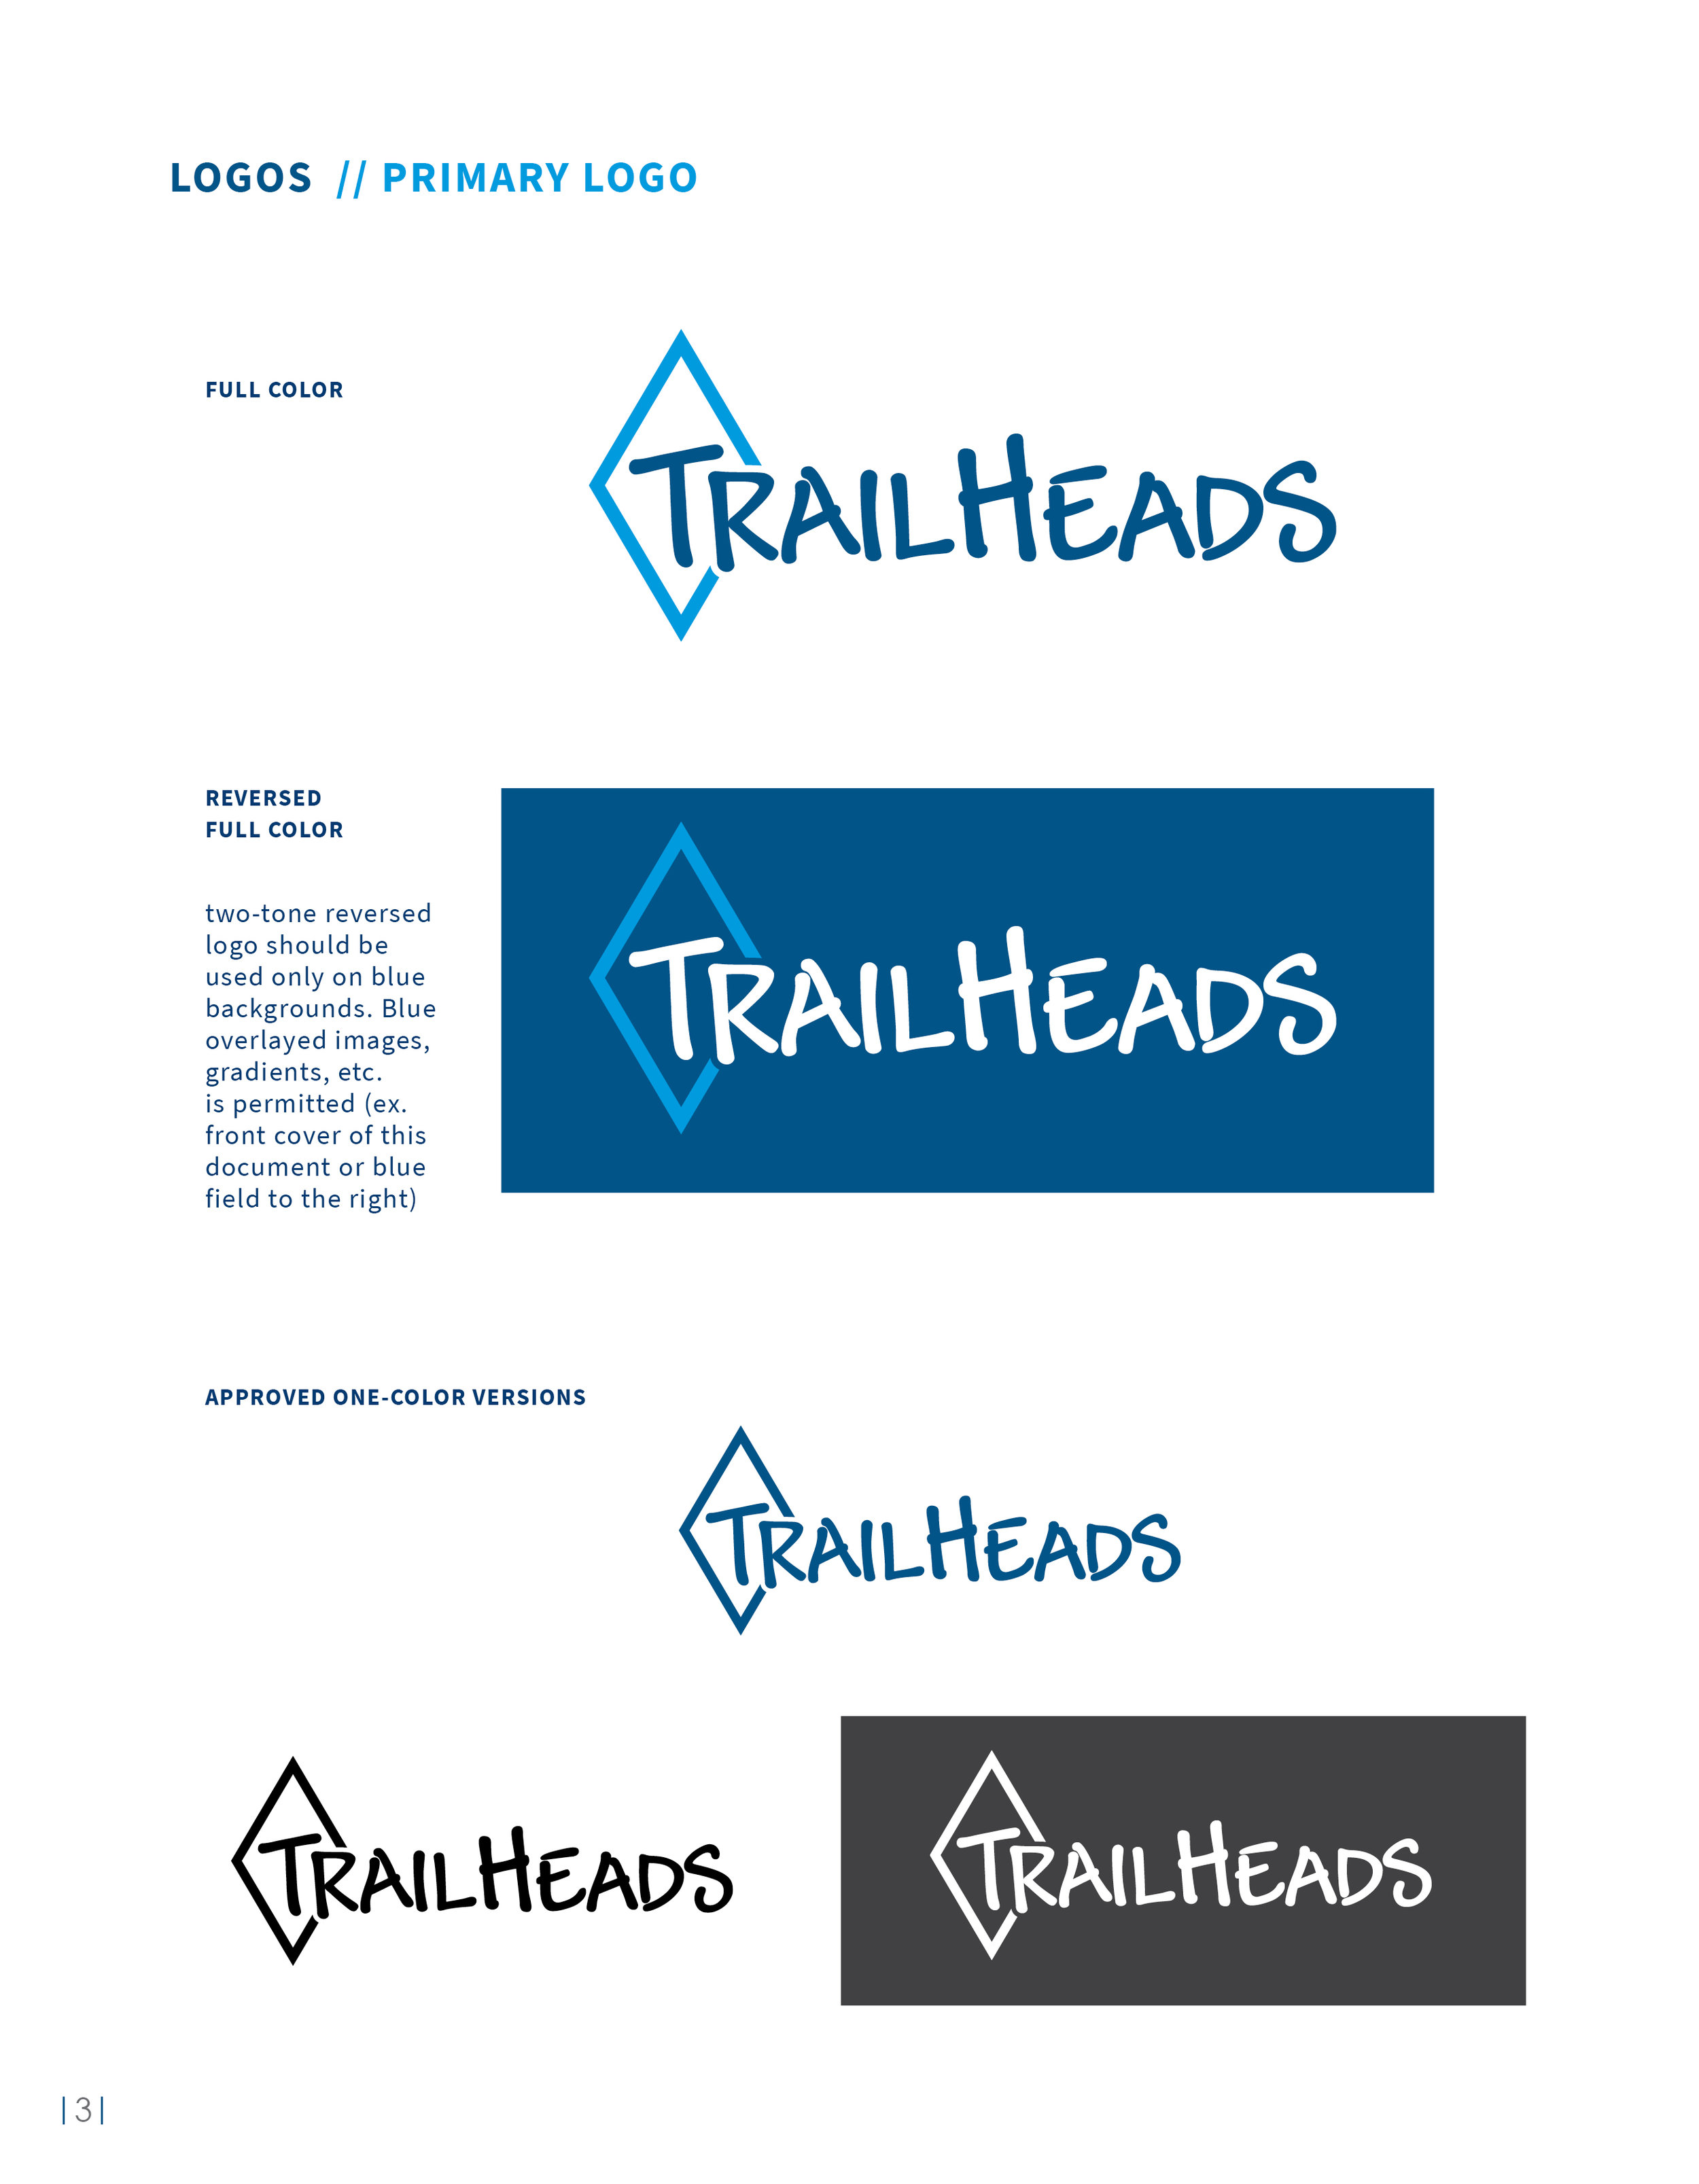 apparel-company-brand-guidelines-design-by-jordan-fretz-design-13.jpg